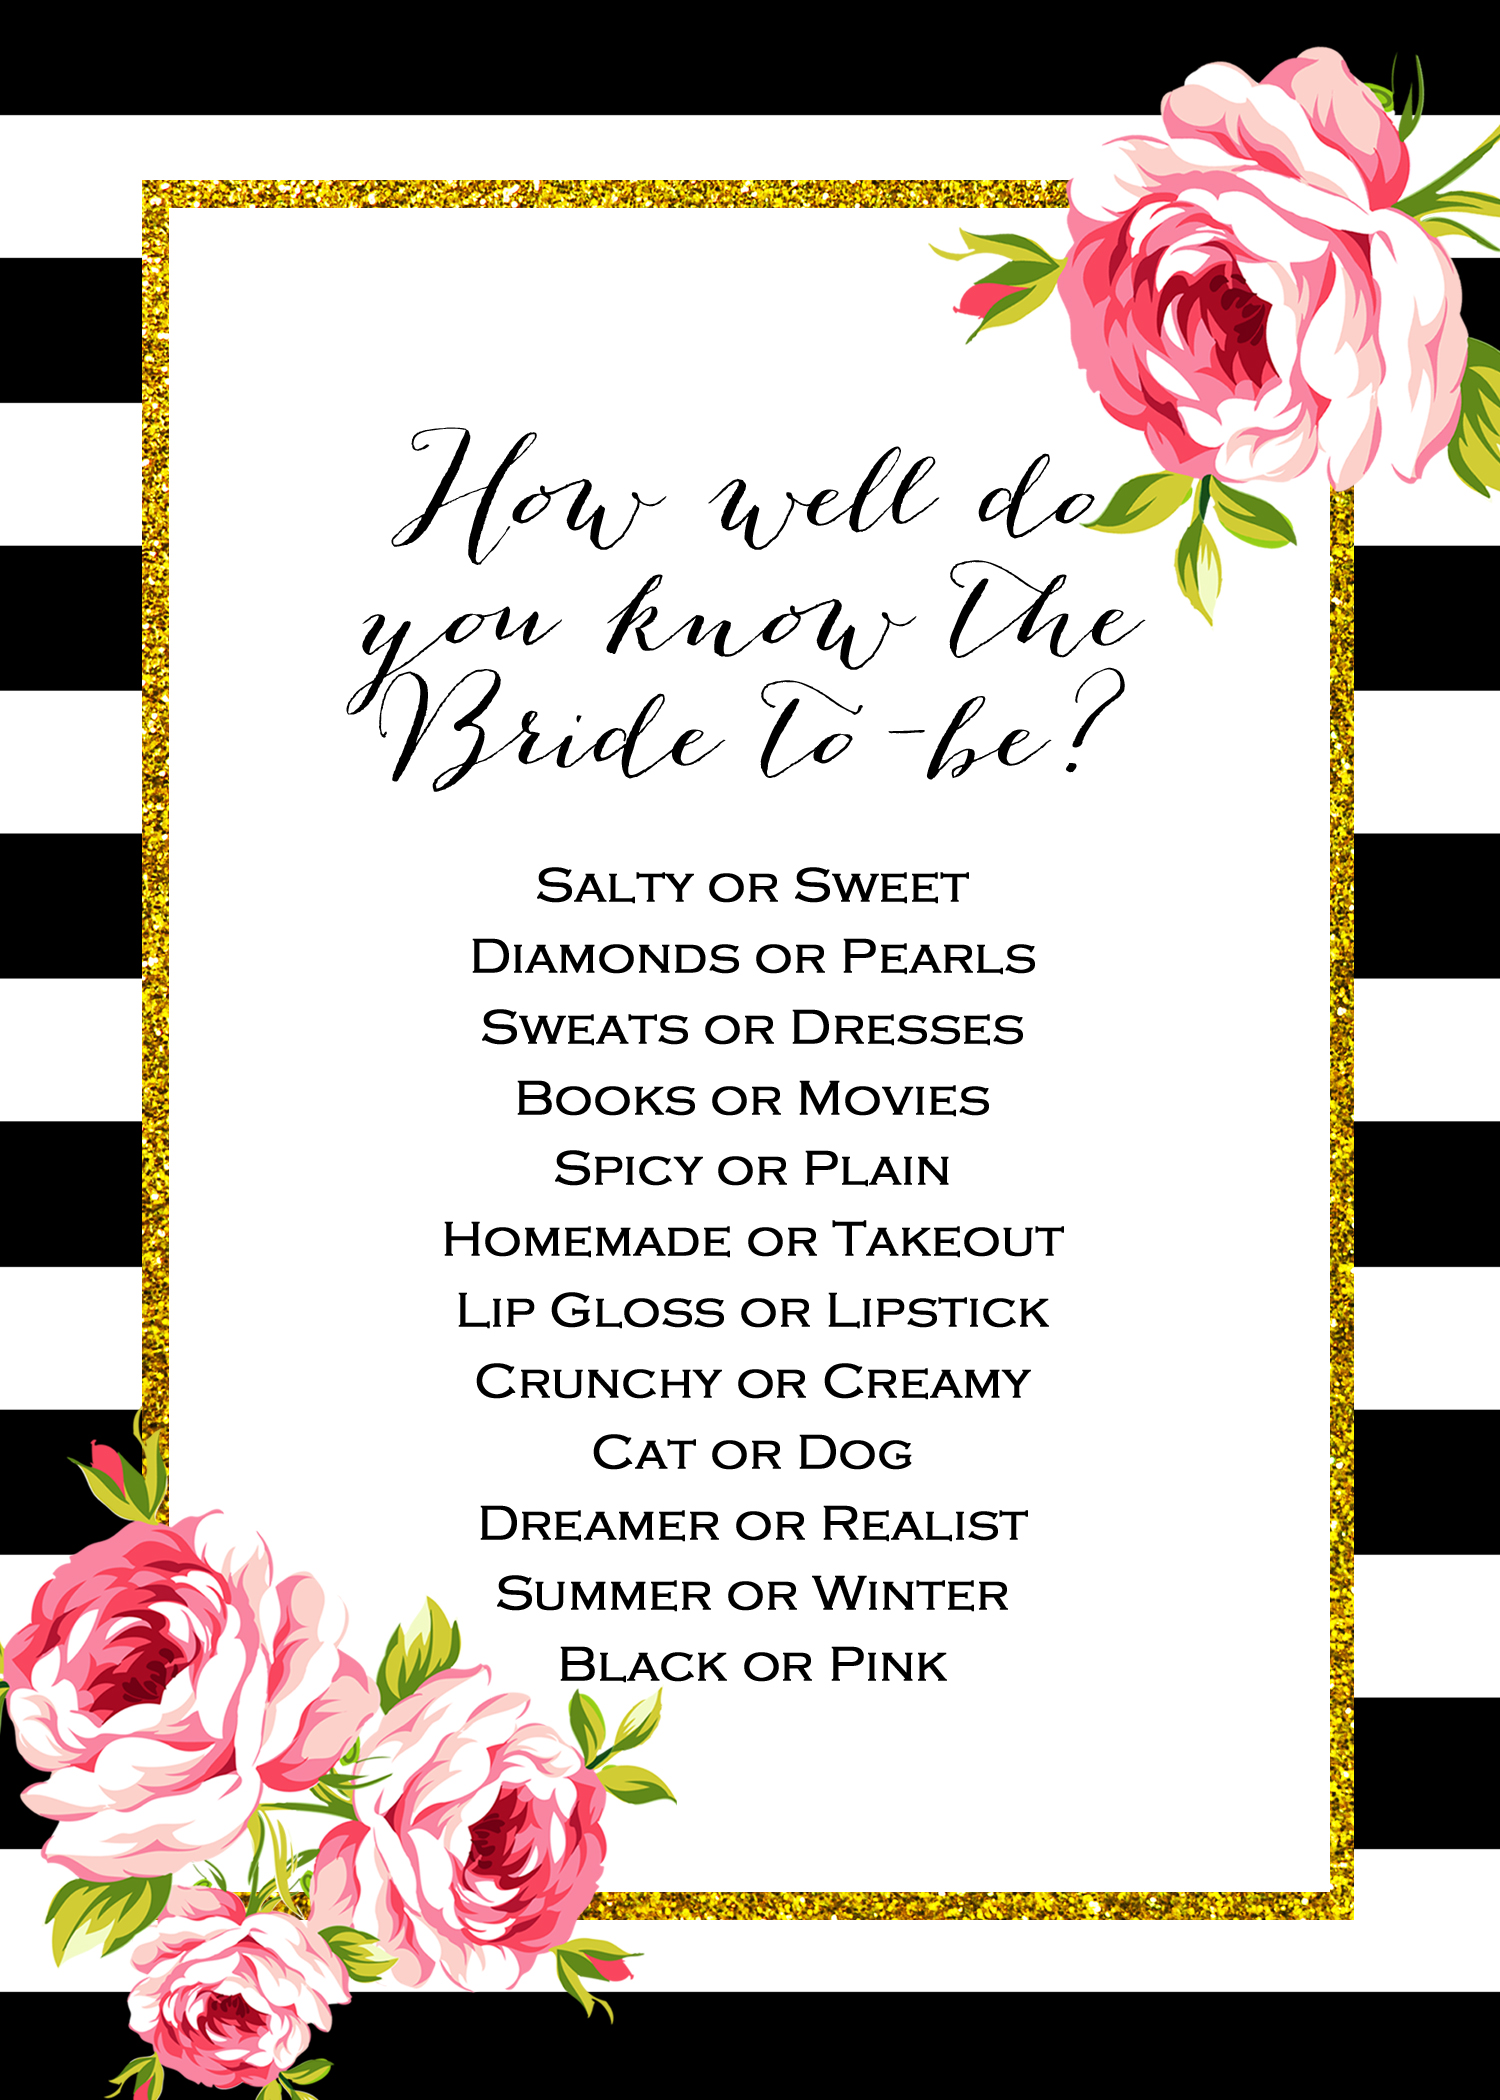 Revered image for how well do you know the bride free printable